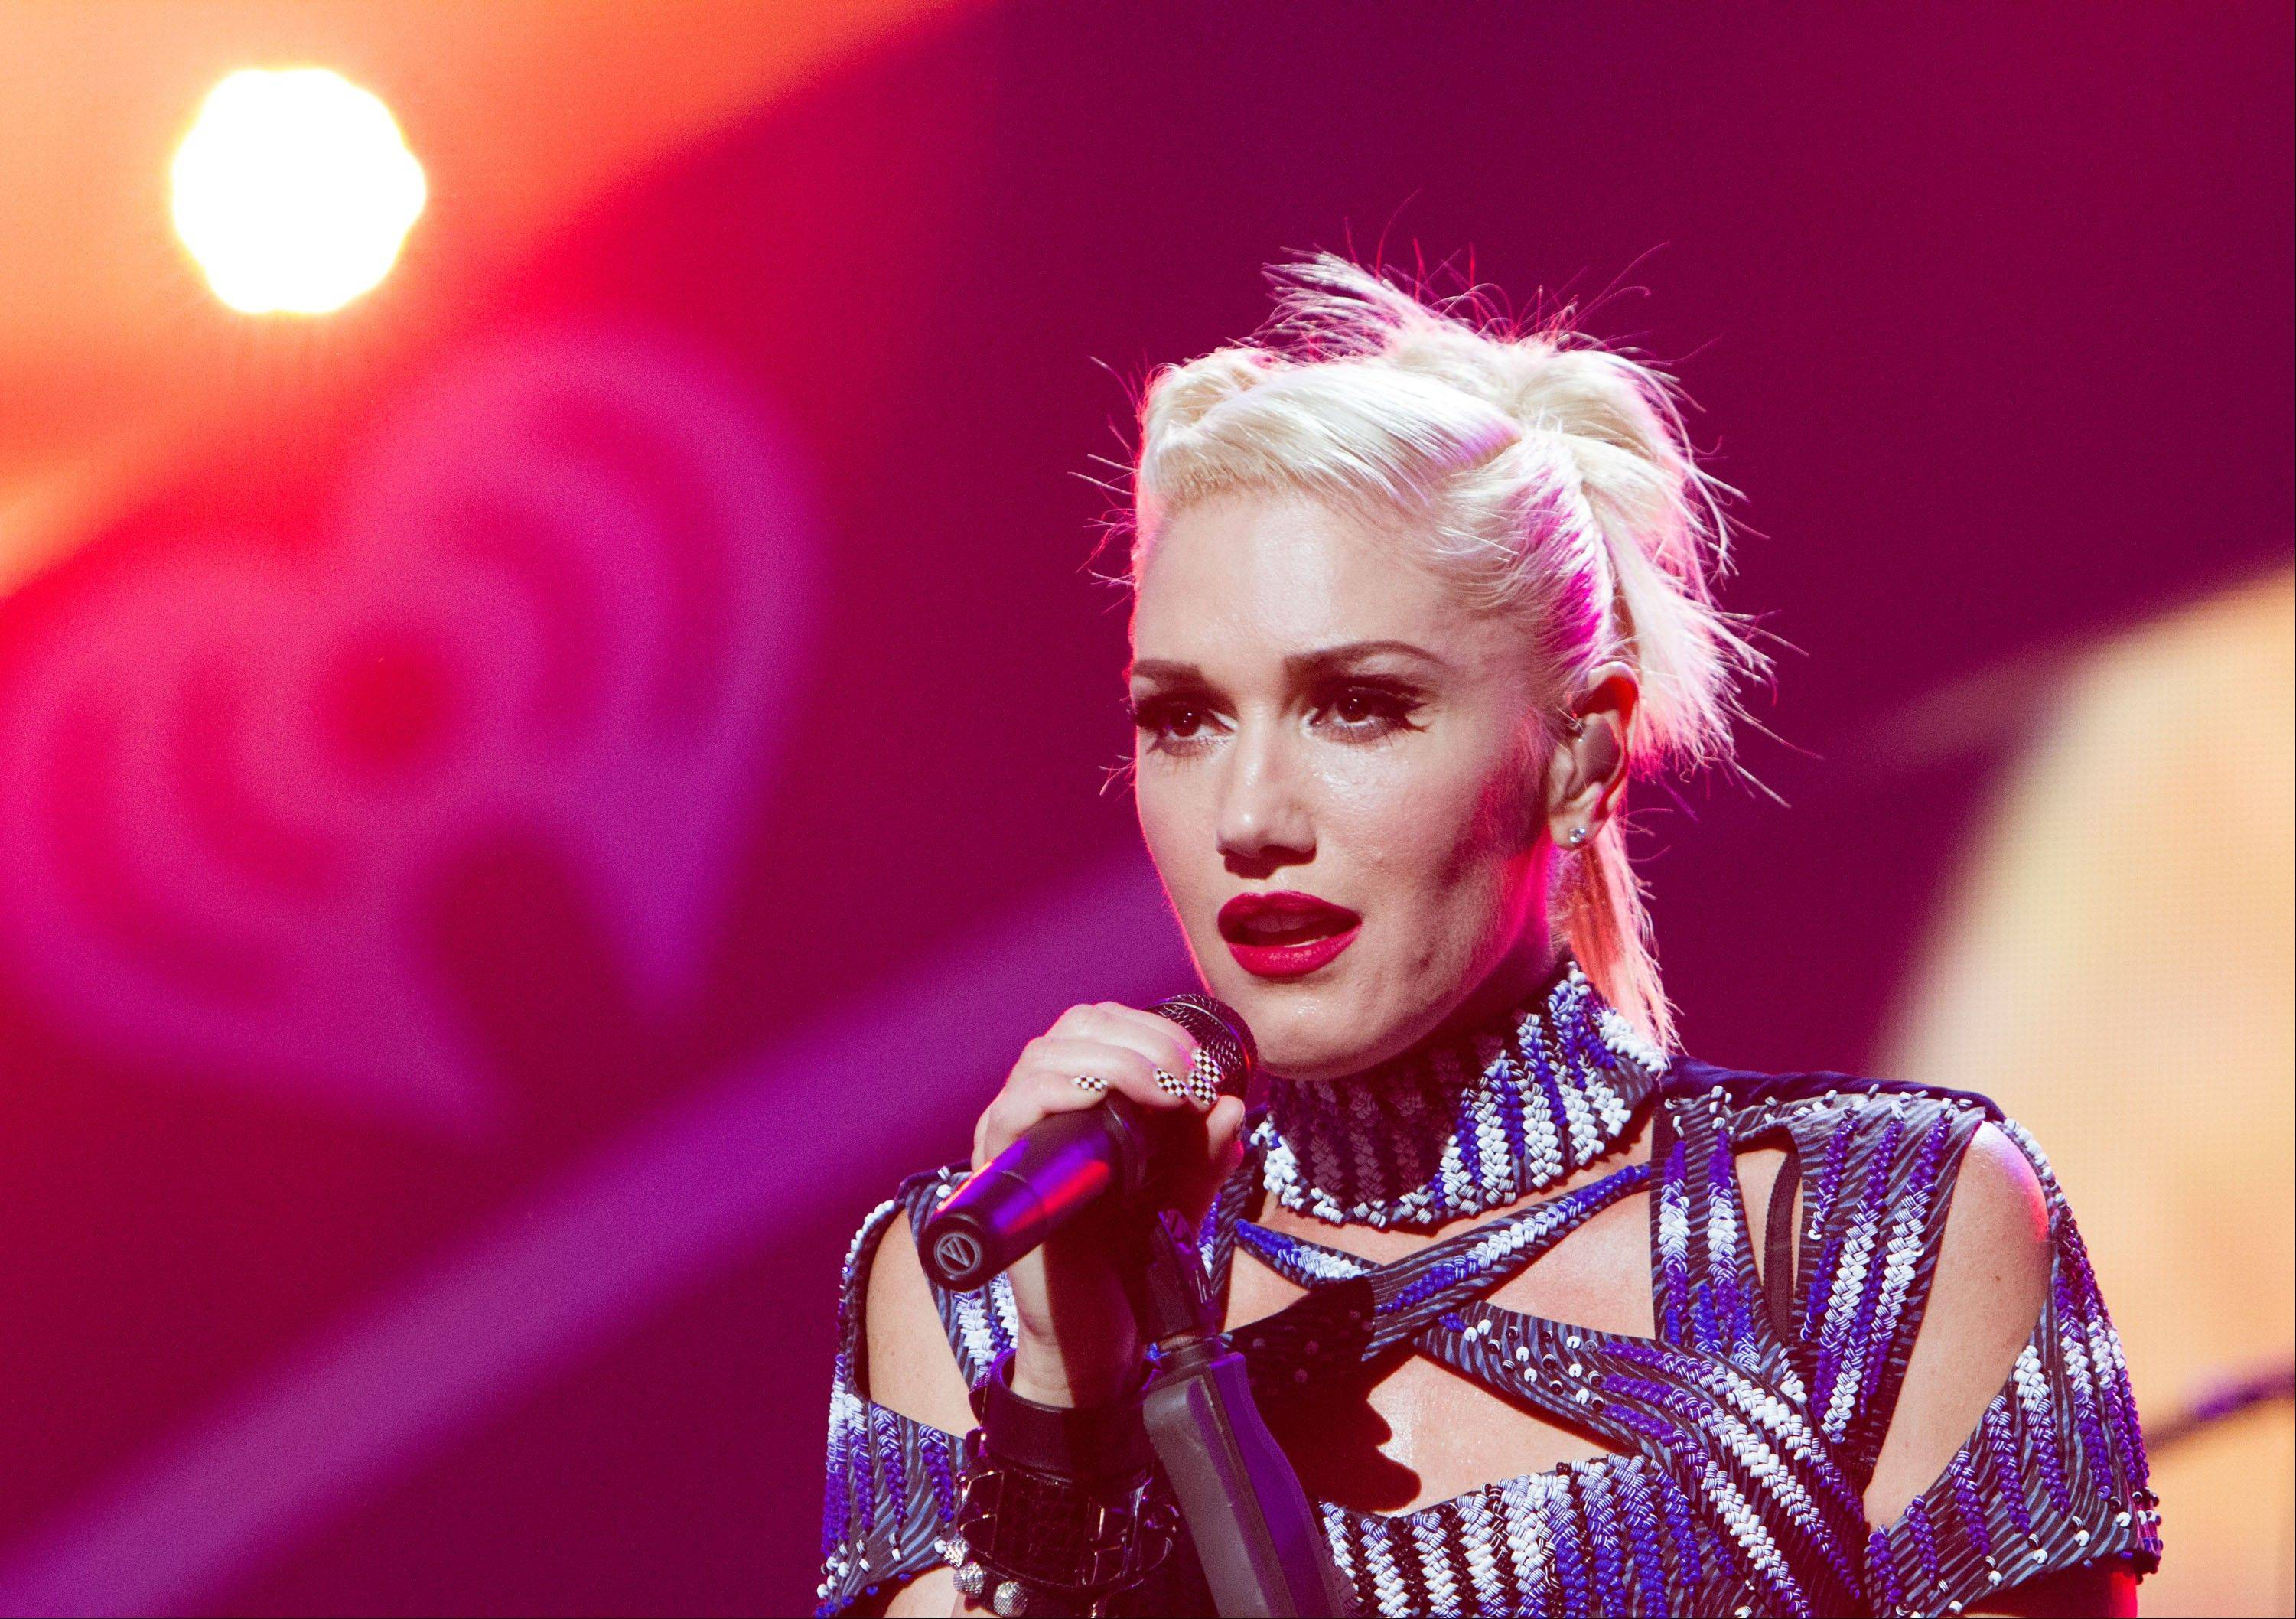 No Doubt with Gwen Stefani has pulled its new cowboys and Indians-themed music video and is apologizing to Native Americans and others who were offended by the clip.